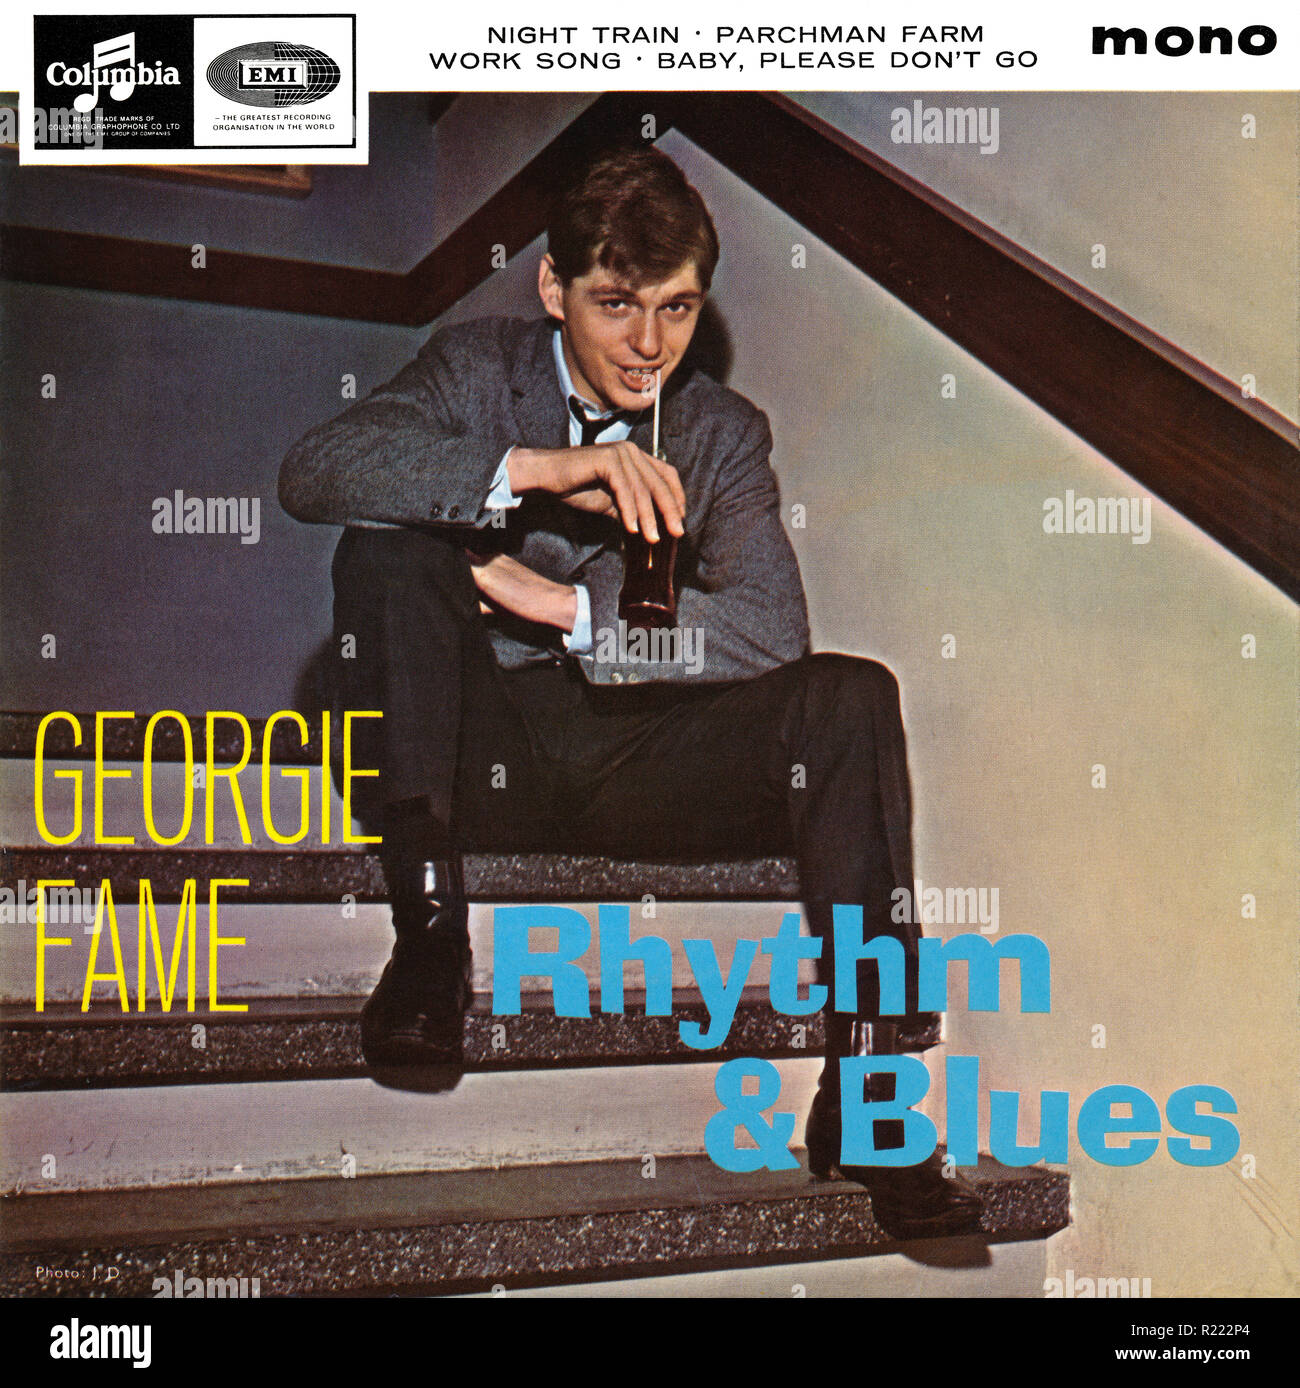 UK 45 rpm 7' EP by Georgie Fame titled Rhythm & Blues on the Columbia label from 1964. Produced by Ian Samwell, recorded live at The Flamingo, a club in Wardour Street, London. - Stock Image